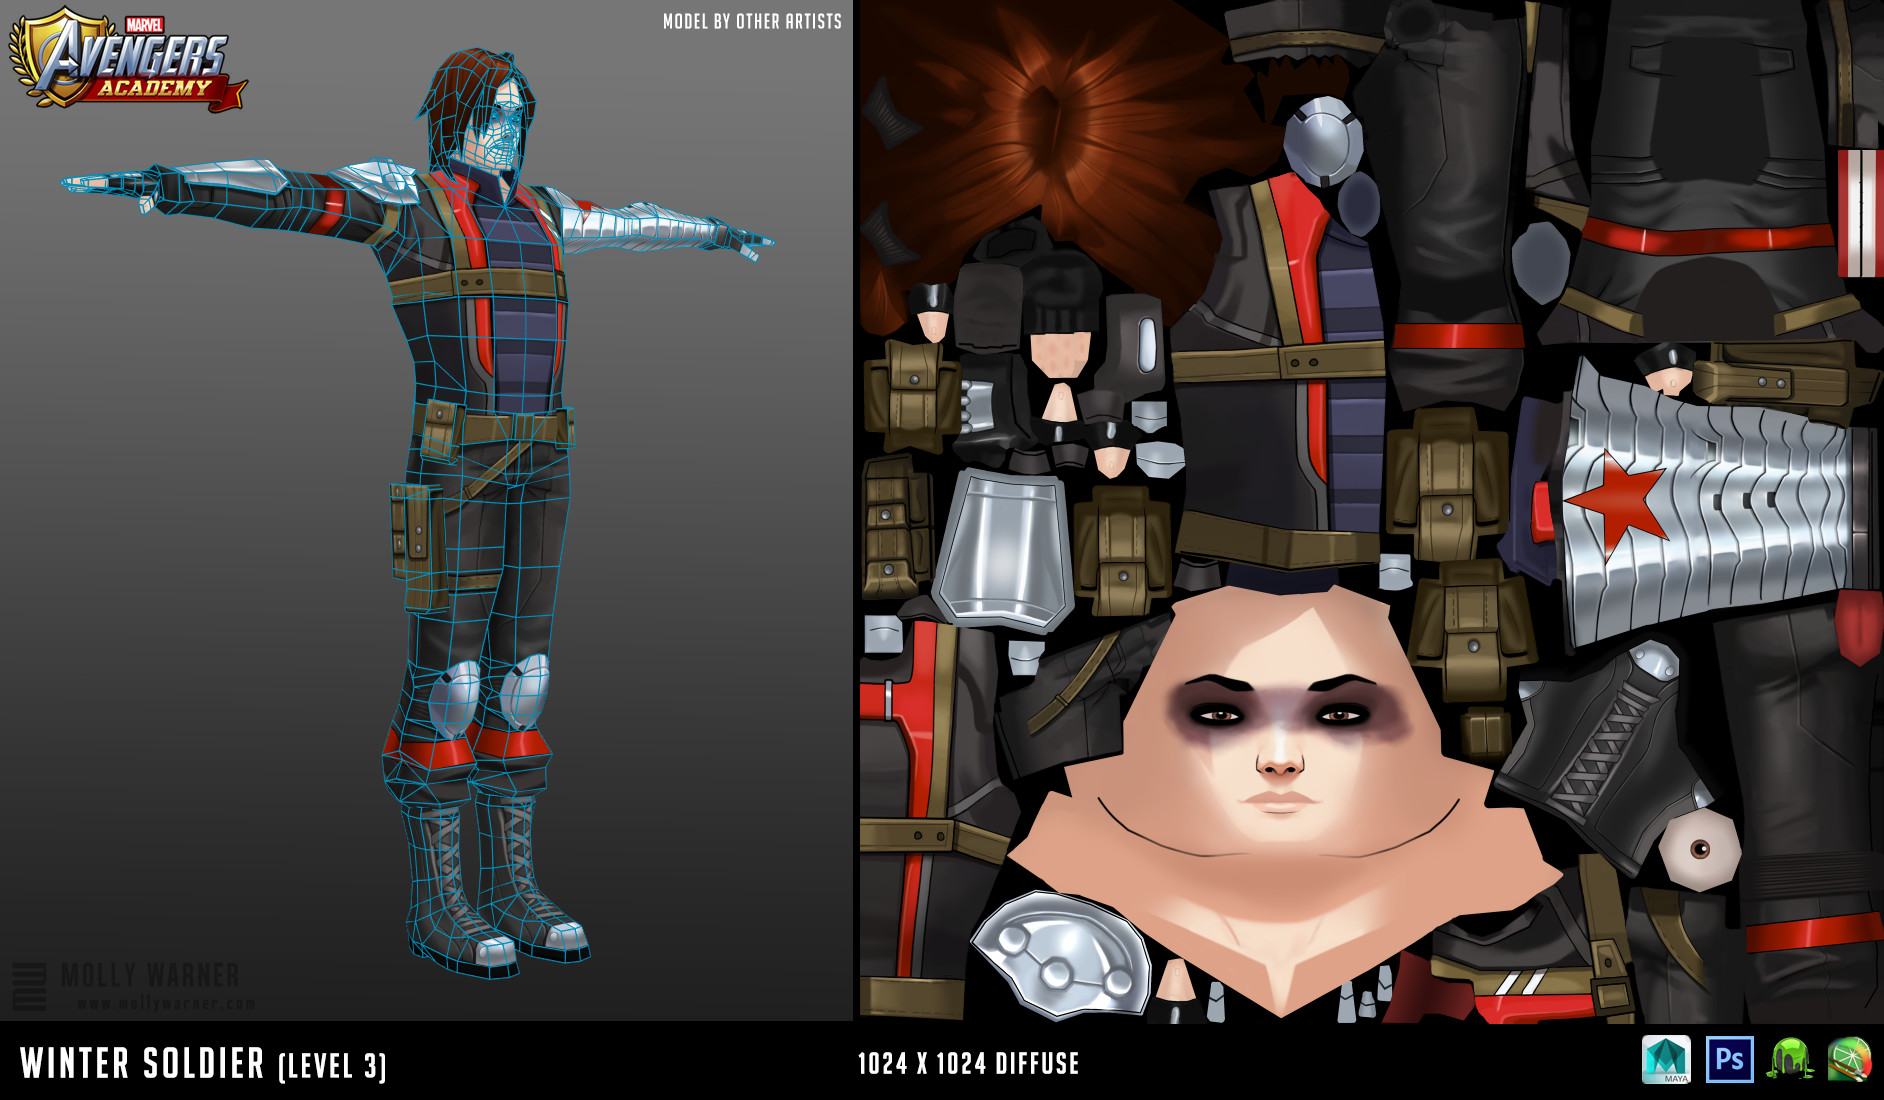 Molly warner 14 wintersoldier l3 textures wireframe